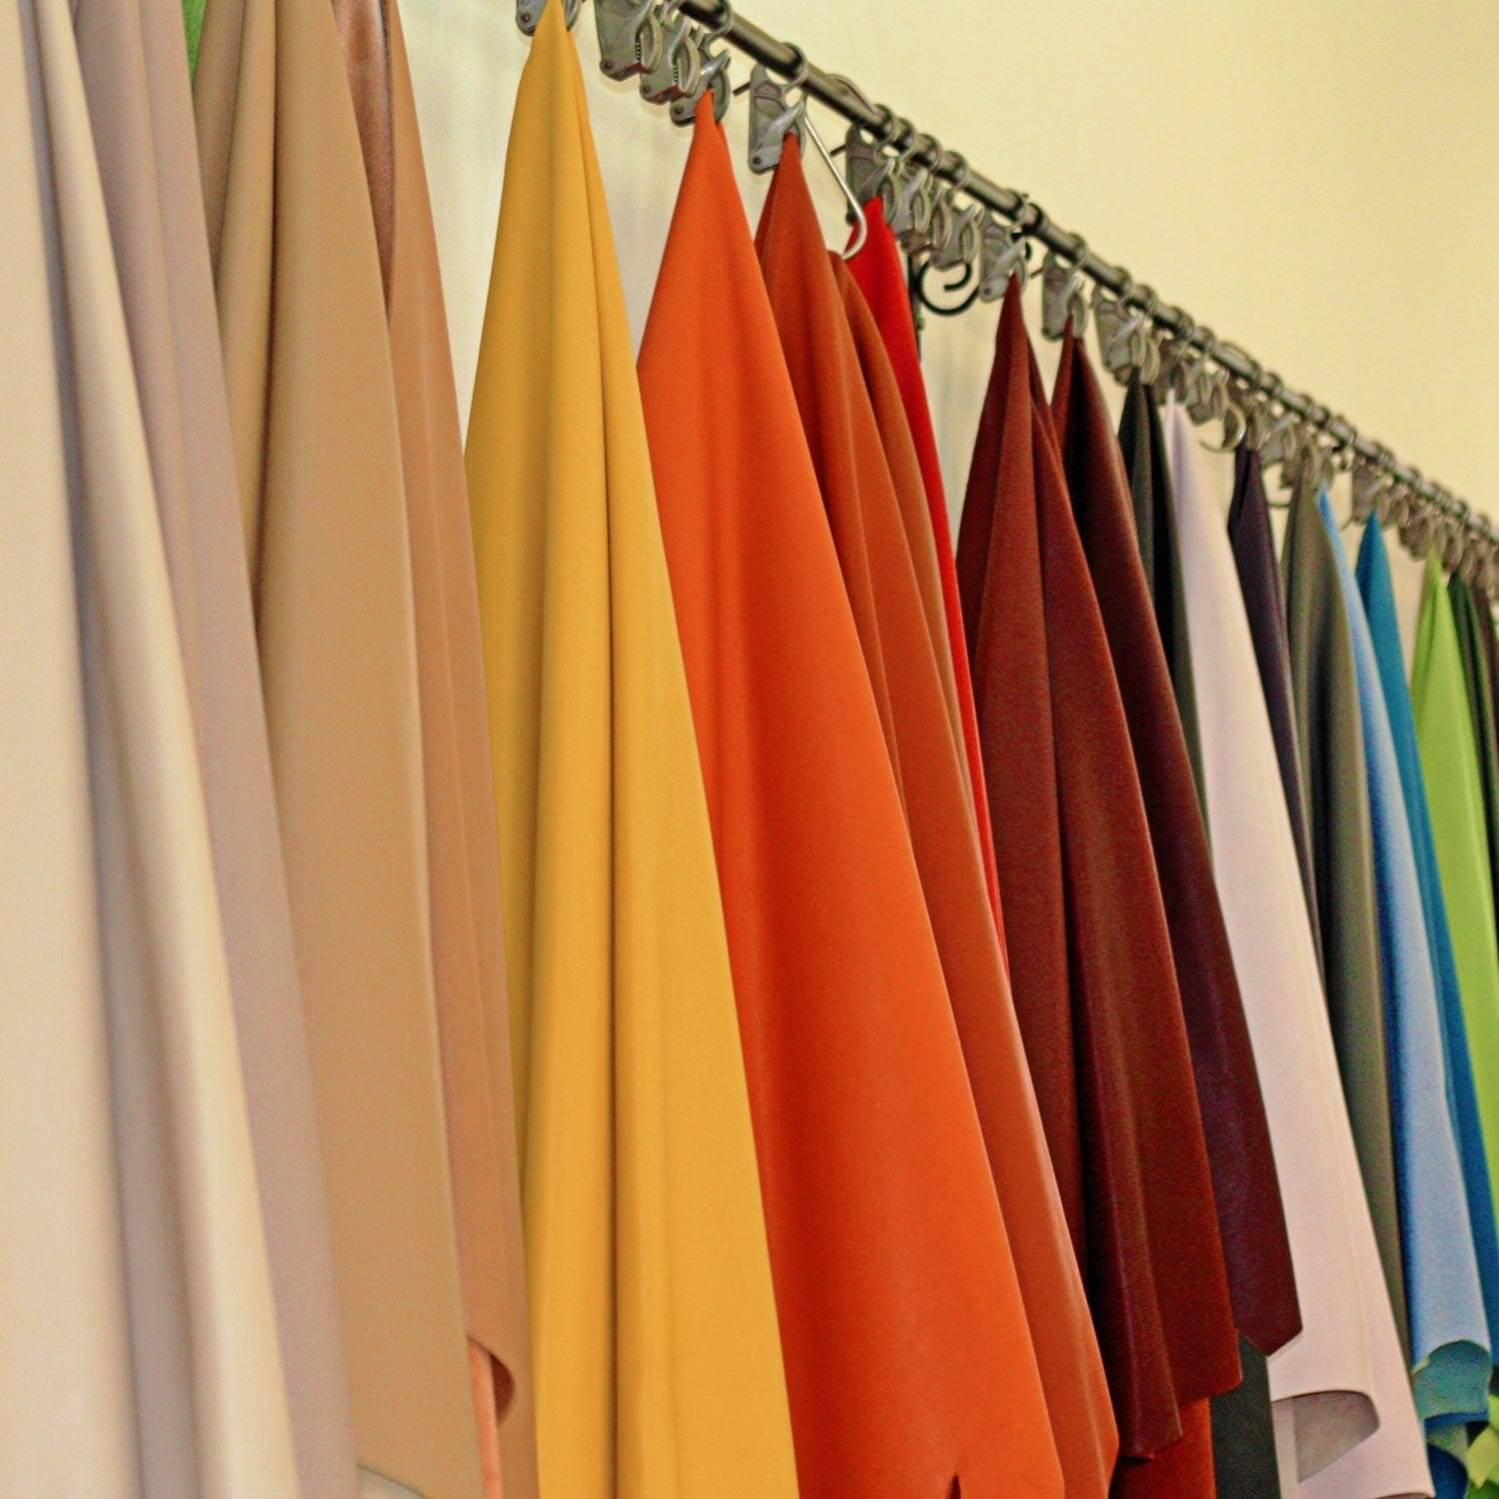 coloured leather hides hanging in factory